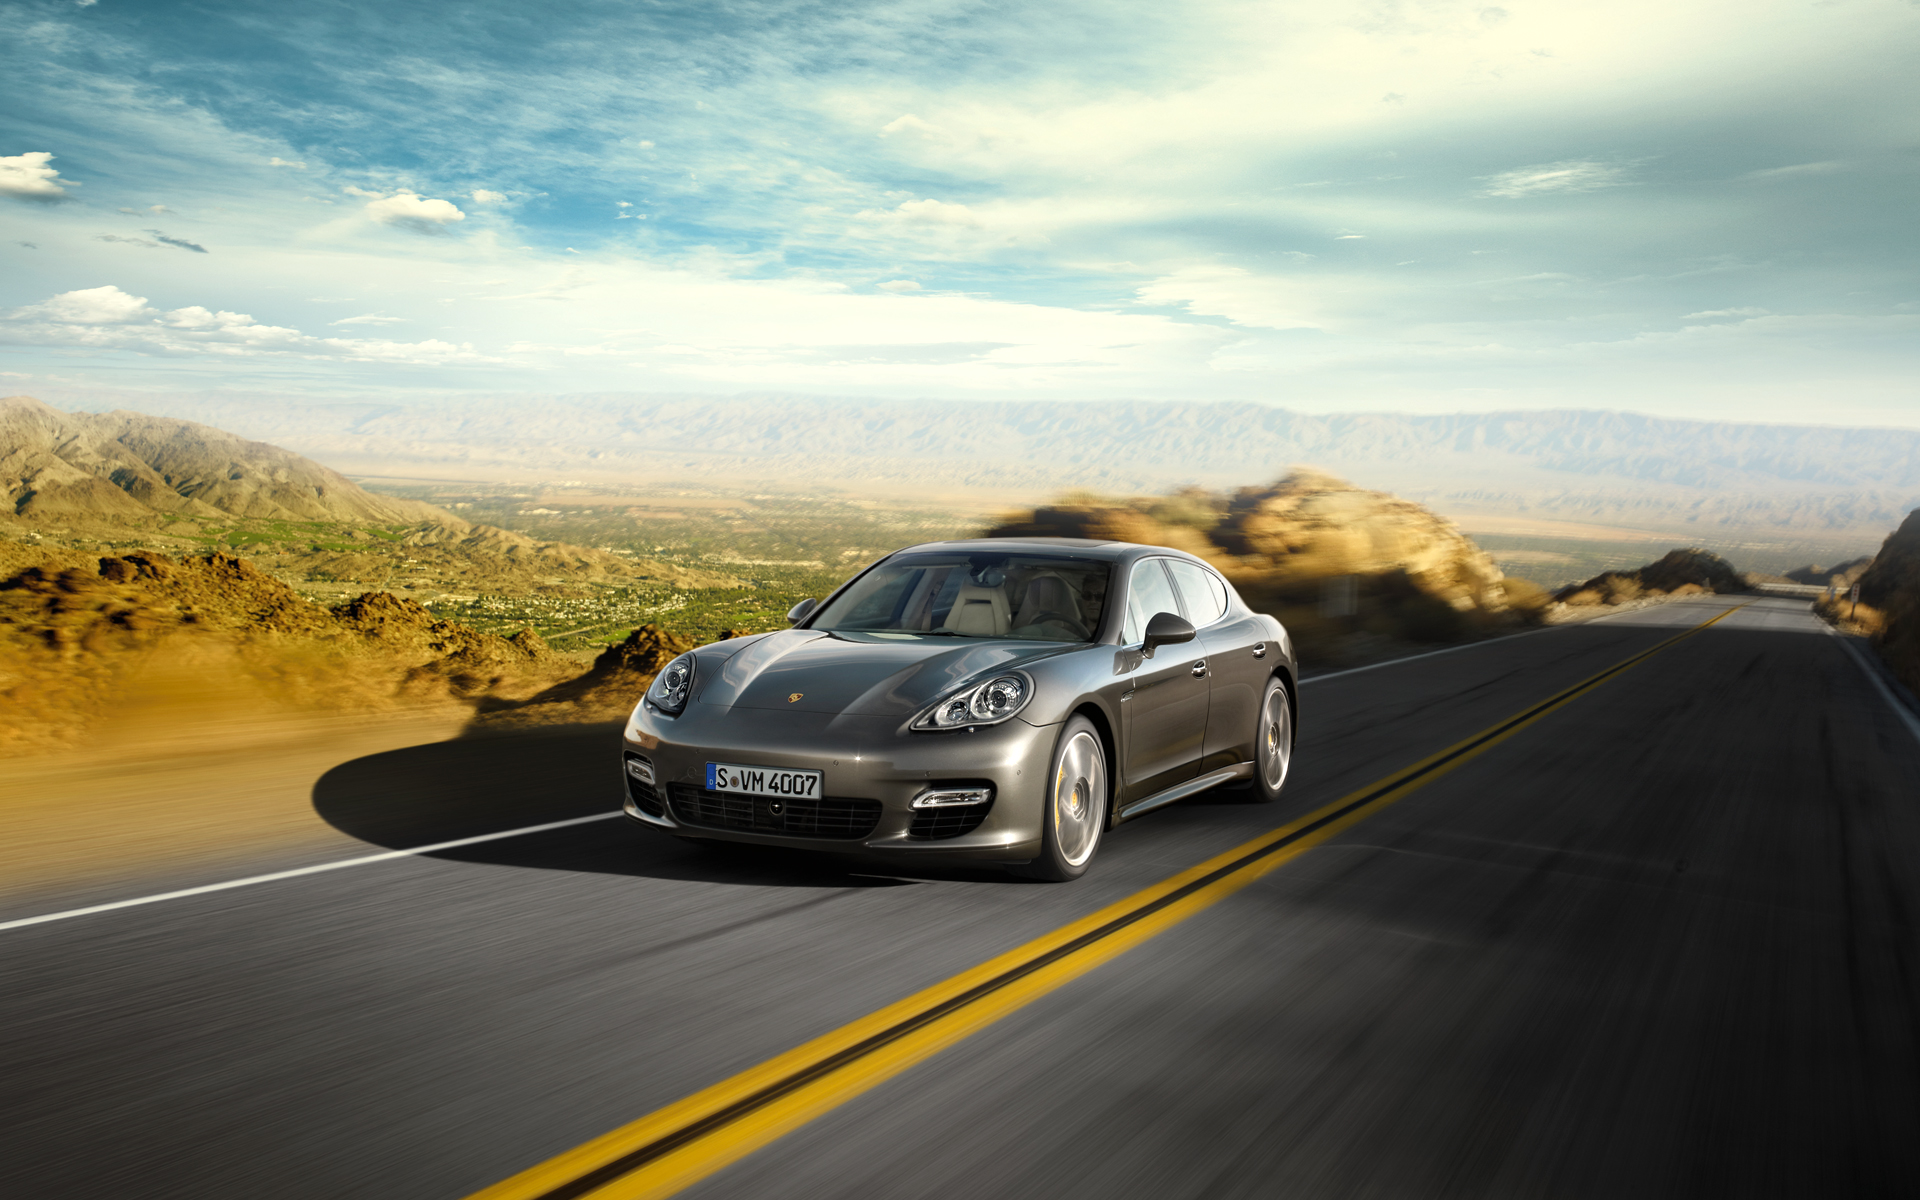 Porsche Panamera Turbo S wallpaper - 461896